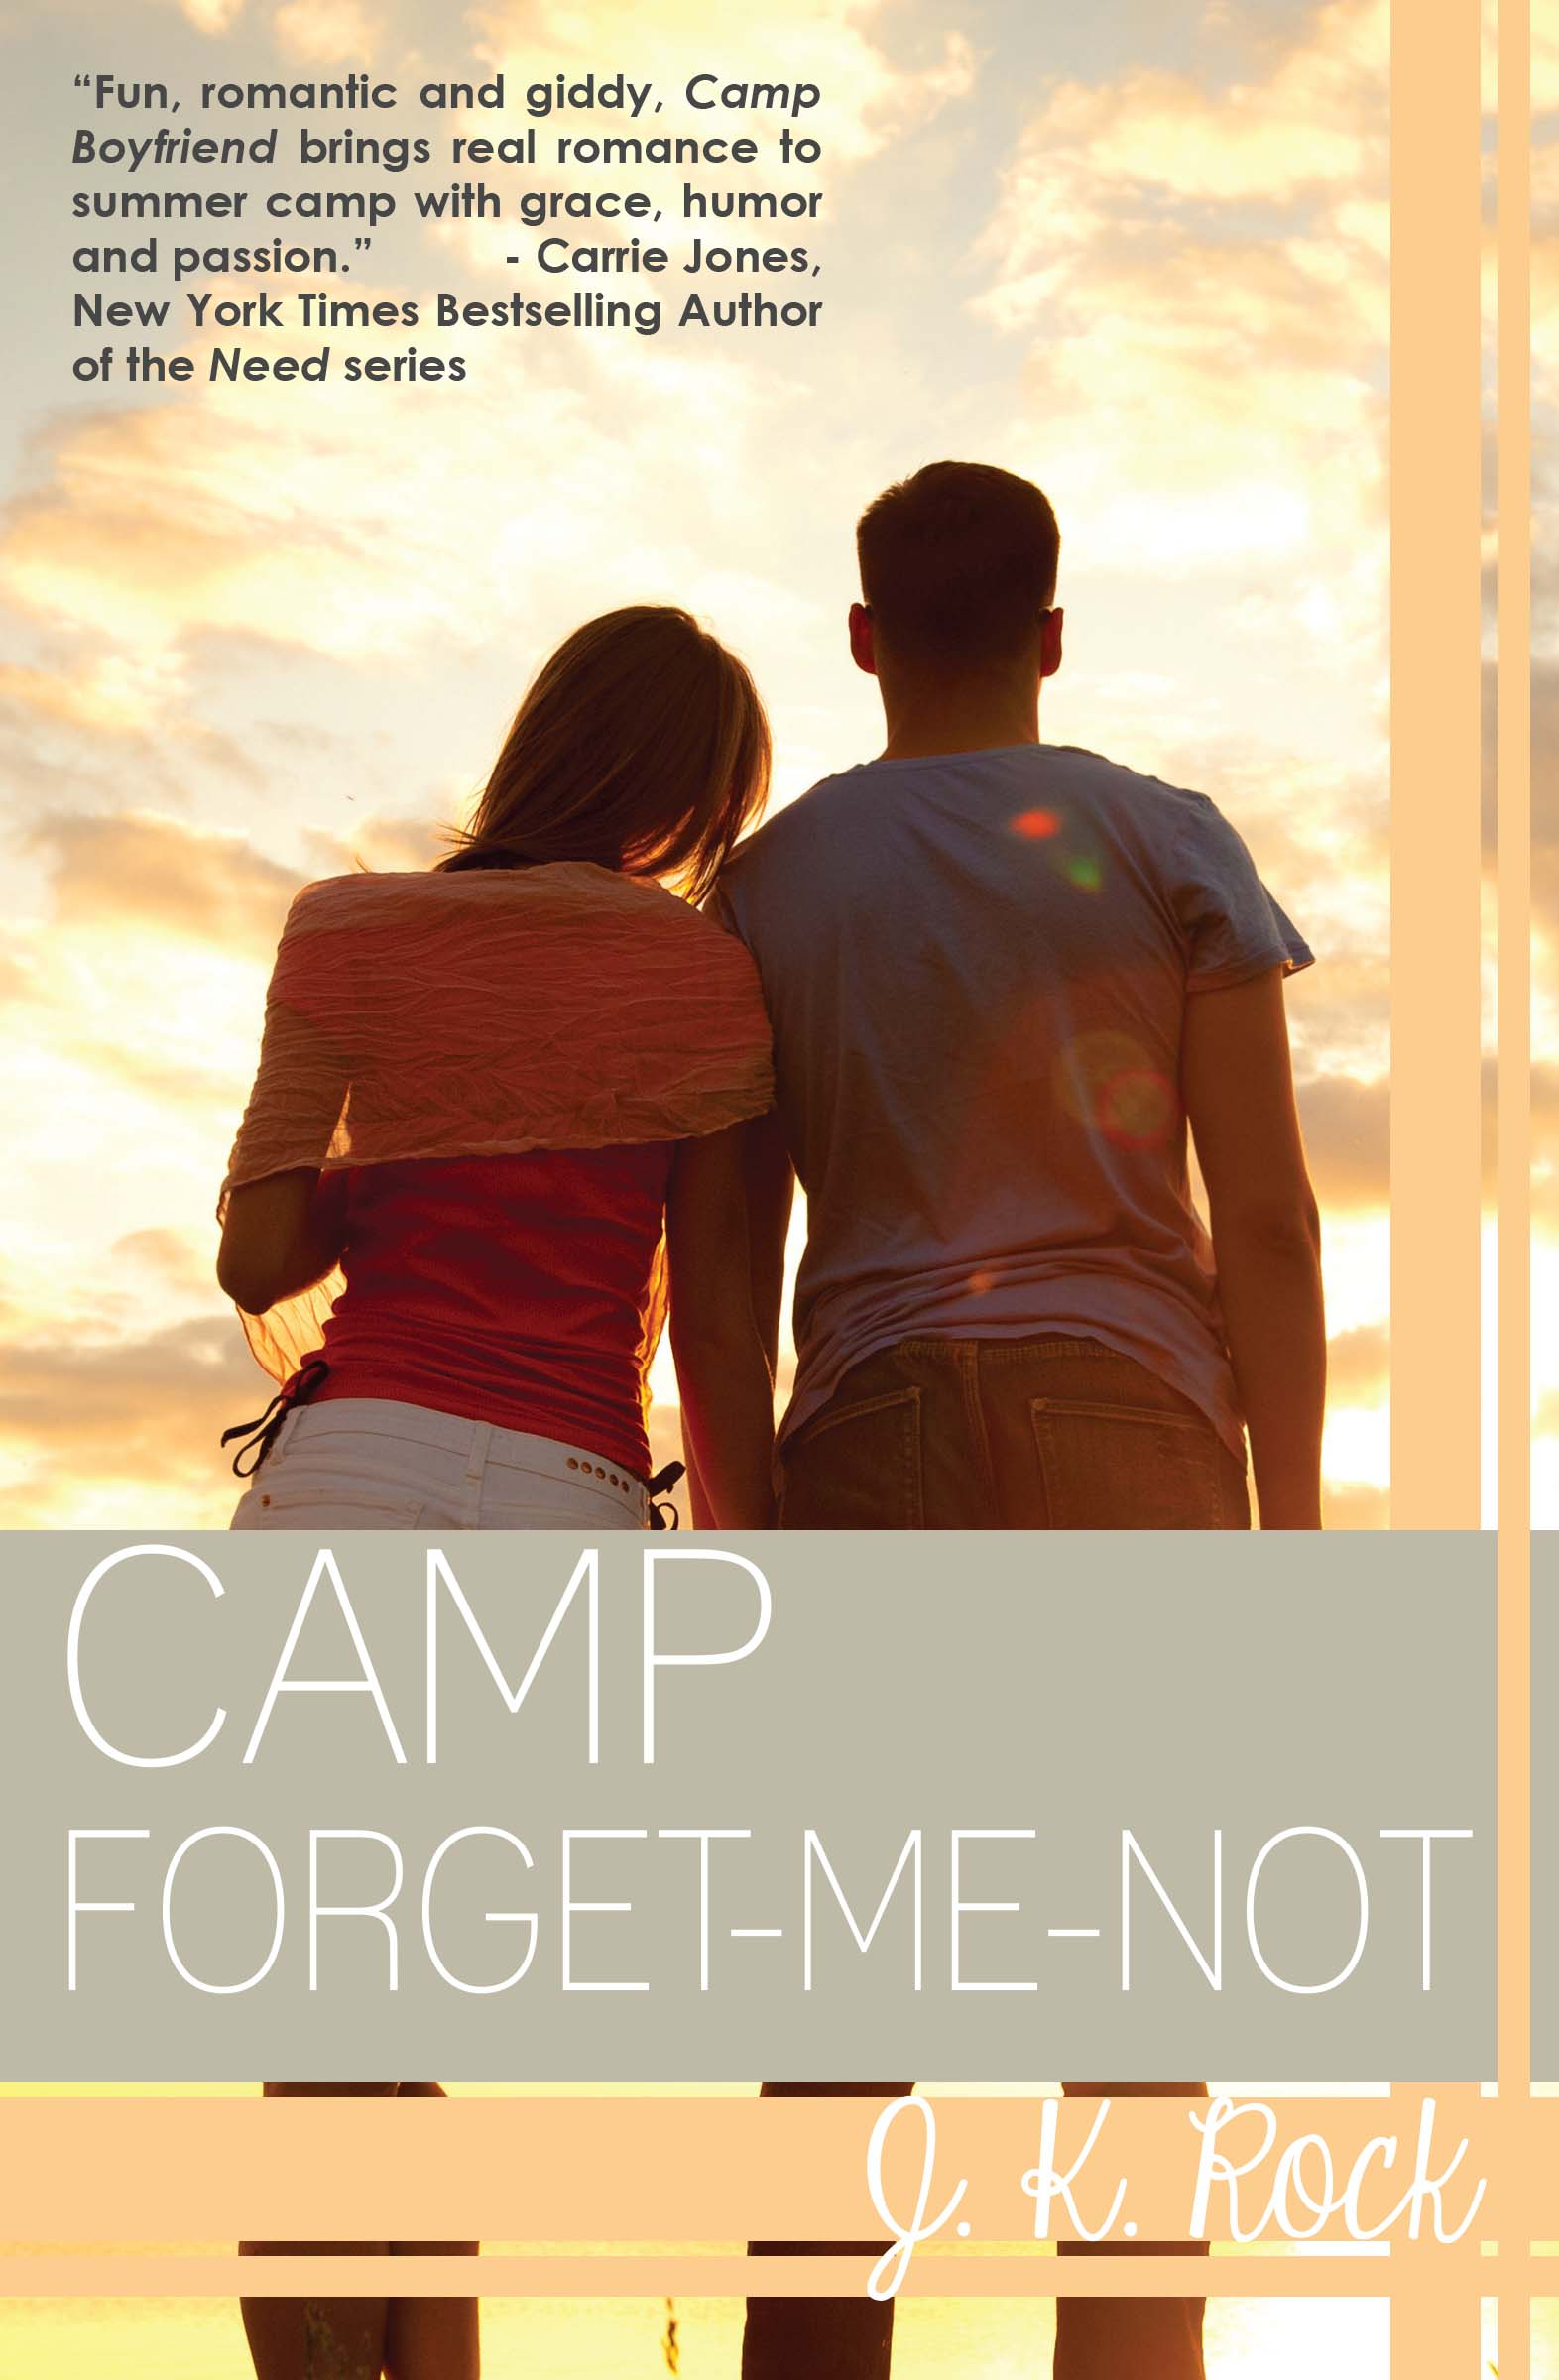 Camp Forget-Me-Not